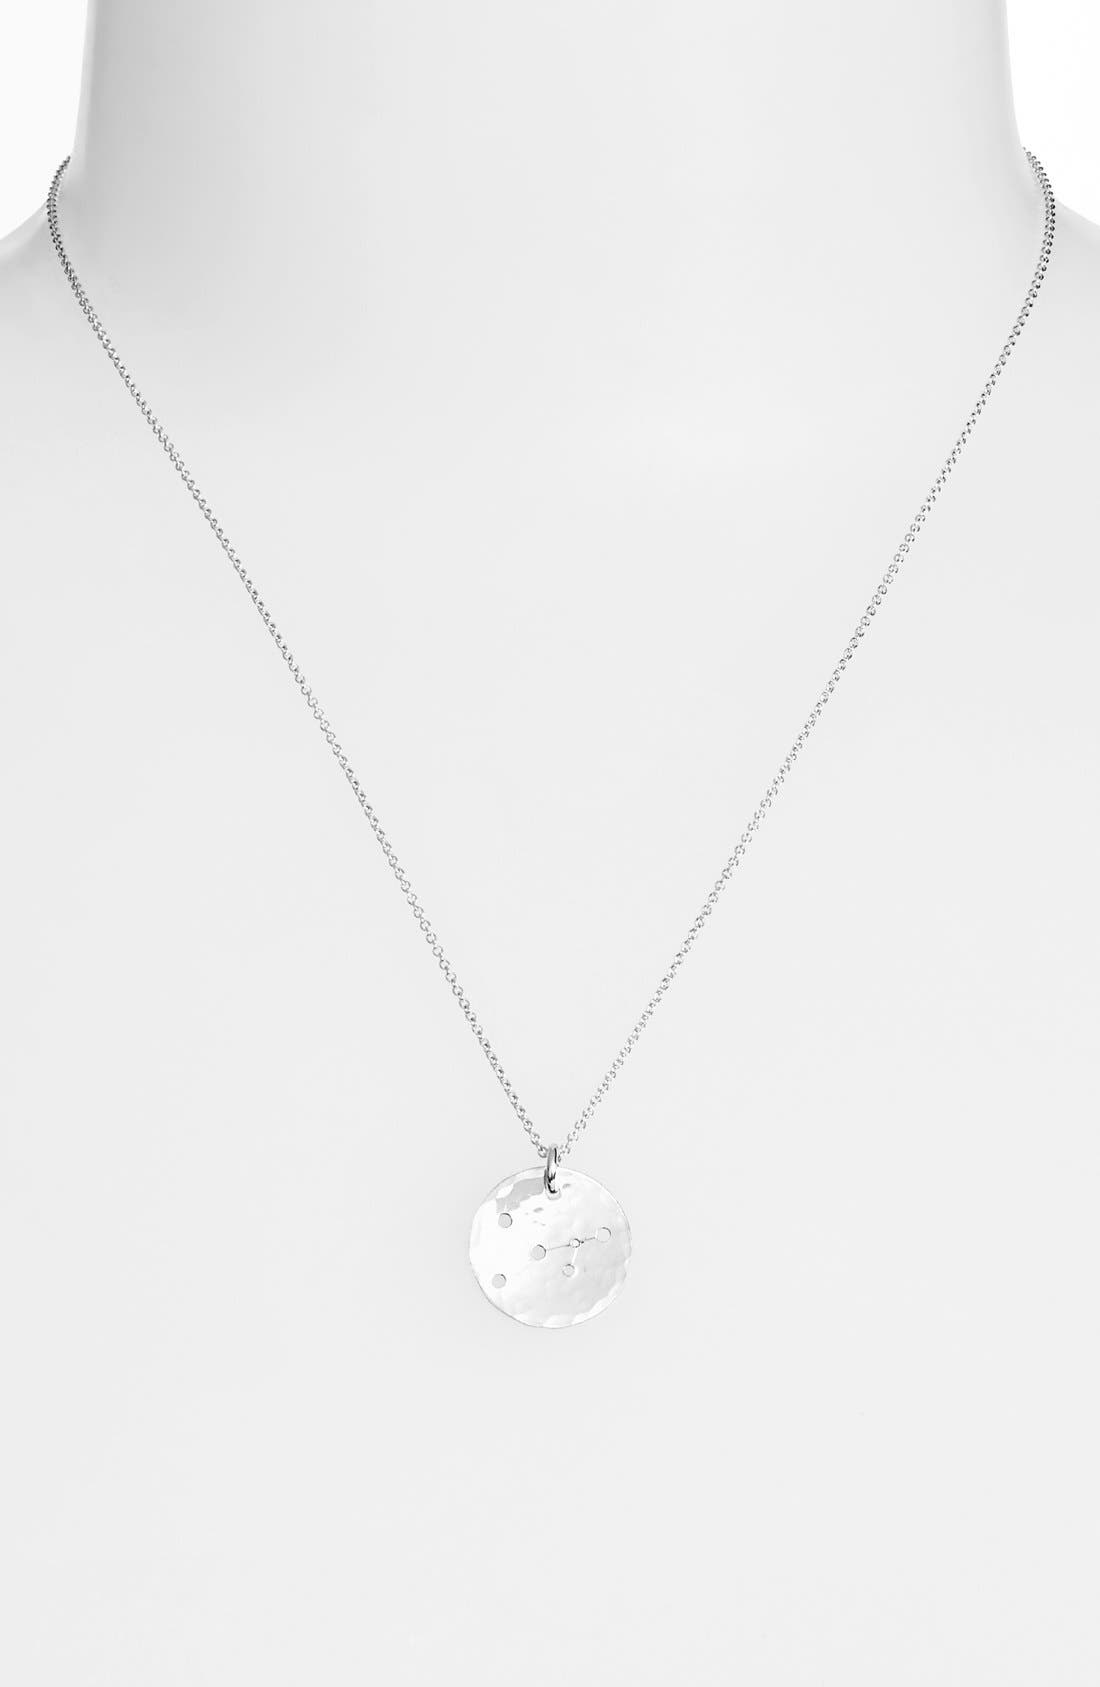 Alternate Image 1 Selected - Ija 'Small Zodiac' Sterling Silver Necklace